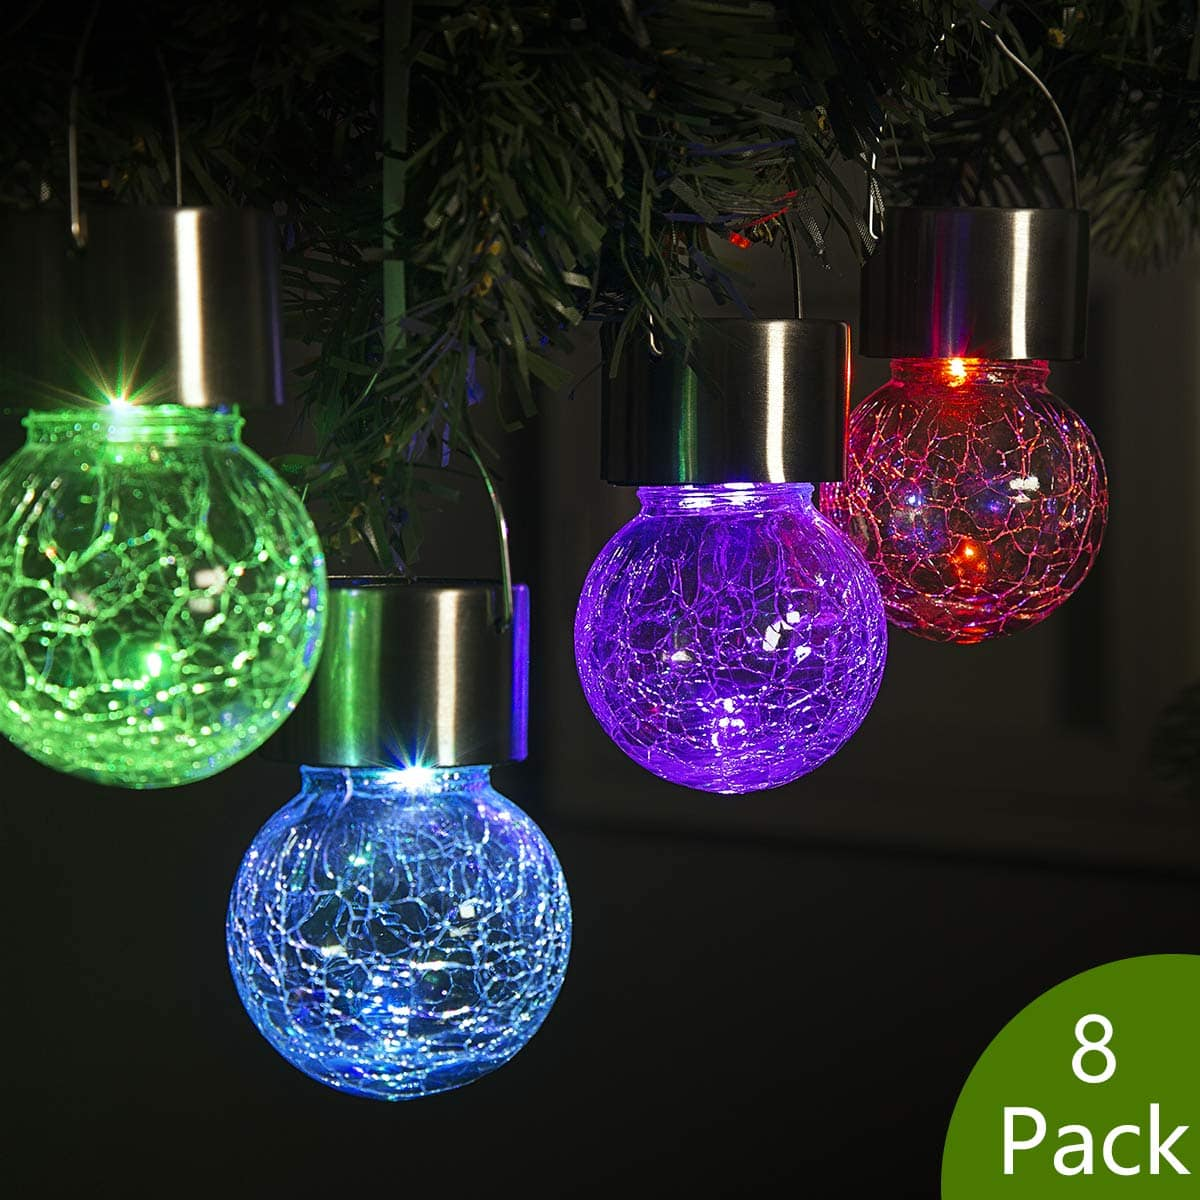 8 Pack Hanging Solar Lights Color Changing Ed Gl 16 5 Fs Slickdeals